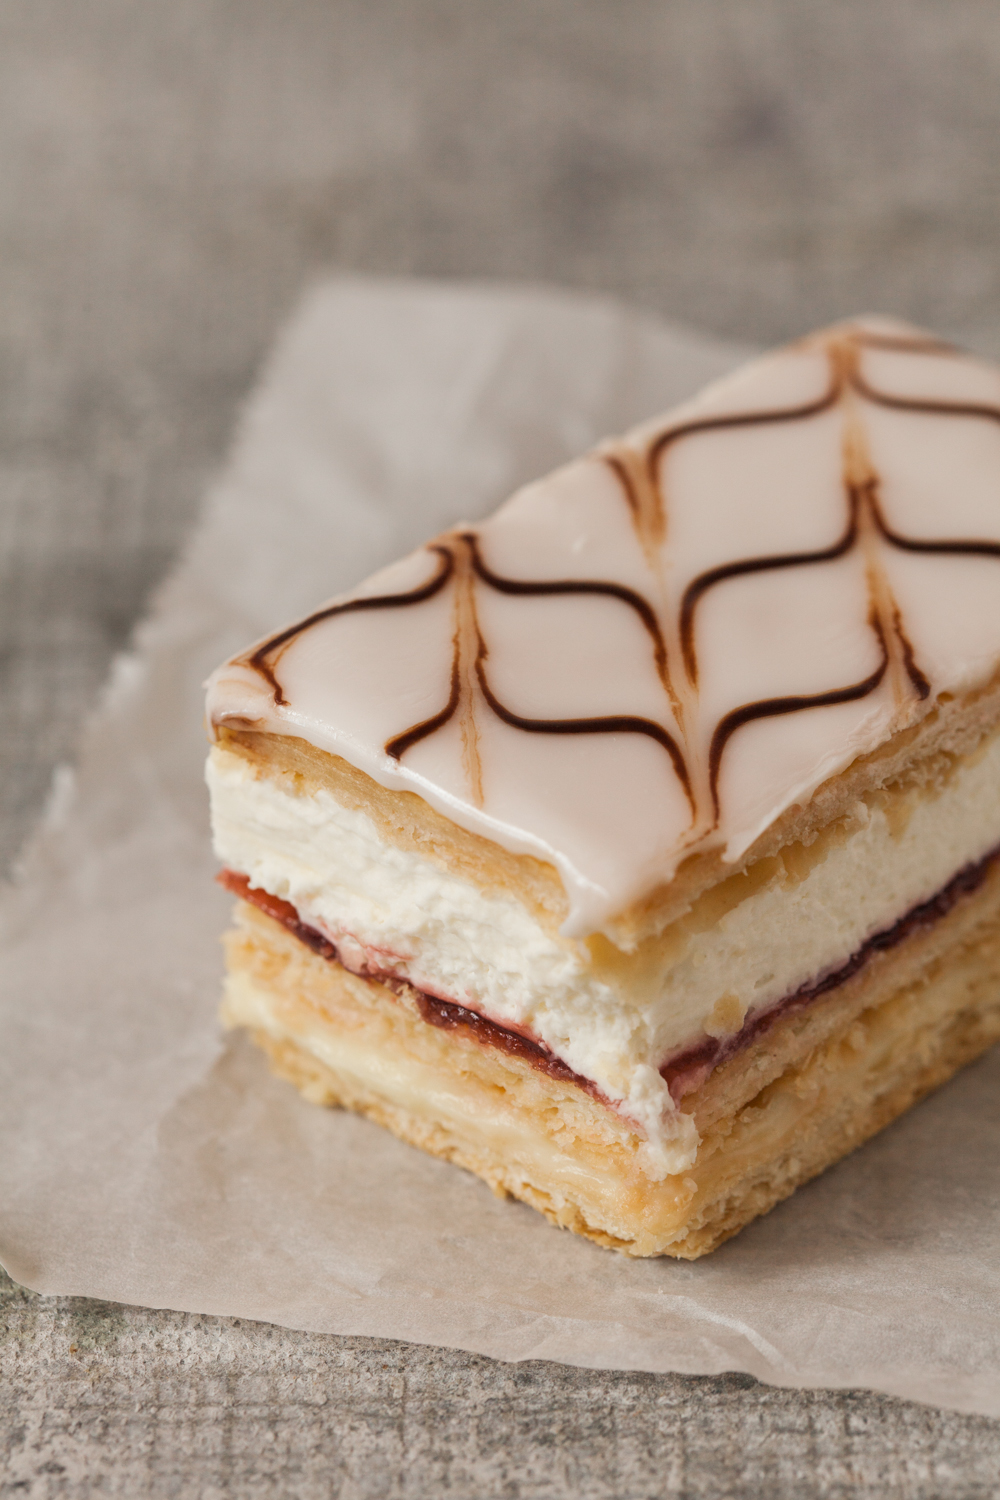 Napoleon:   The Napoleon has three layers of flaky French pastry, layered with vanilla custard, fresh whipped cream, and a hint of raspberry.  All of this deliciousness is enrobed in fondant. This pastry is as bold as the Emperor of France himself (though it wouldn't dare attempt a land-war in Asia).